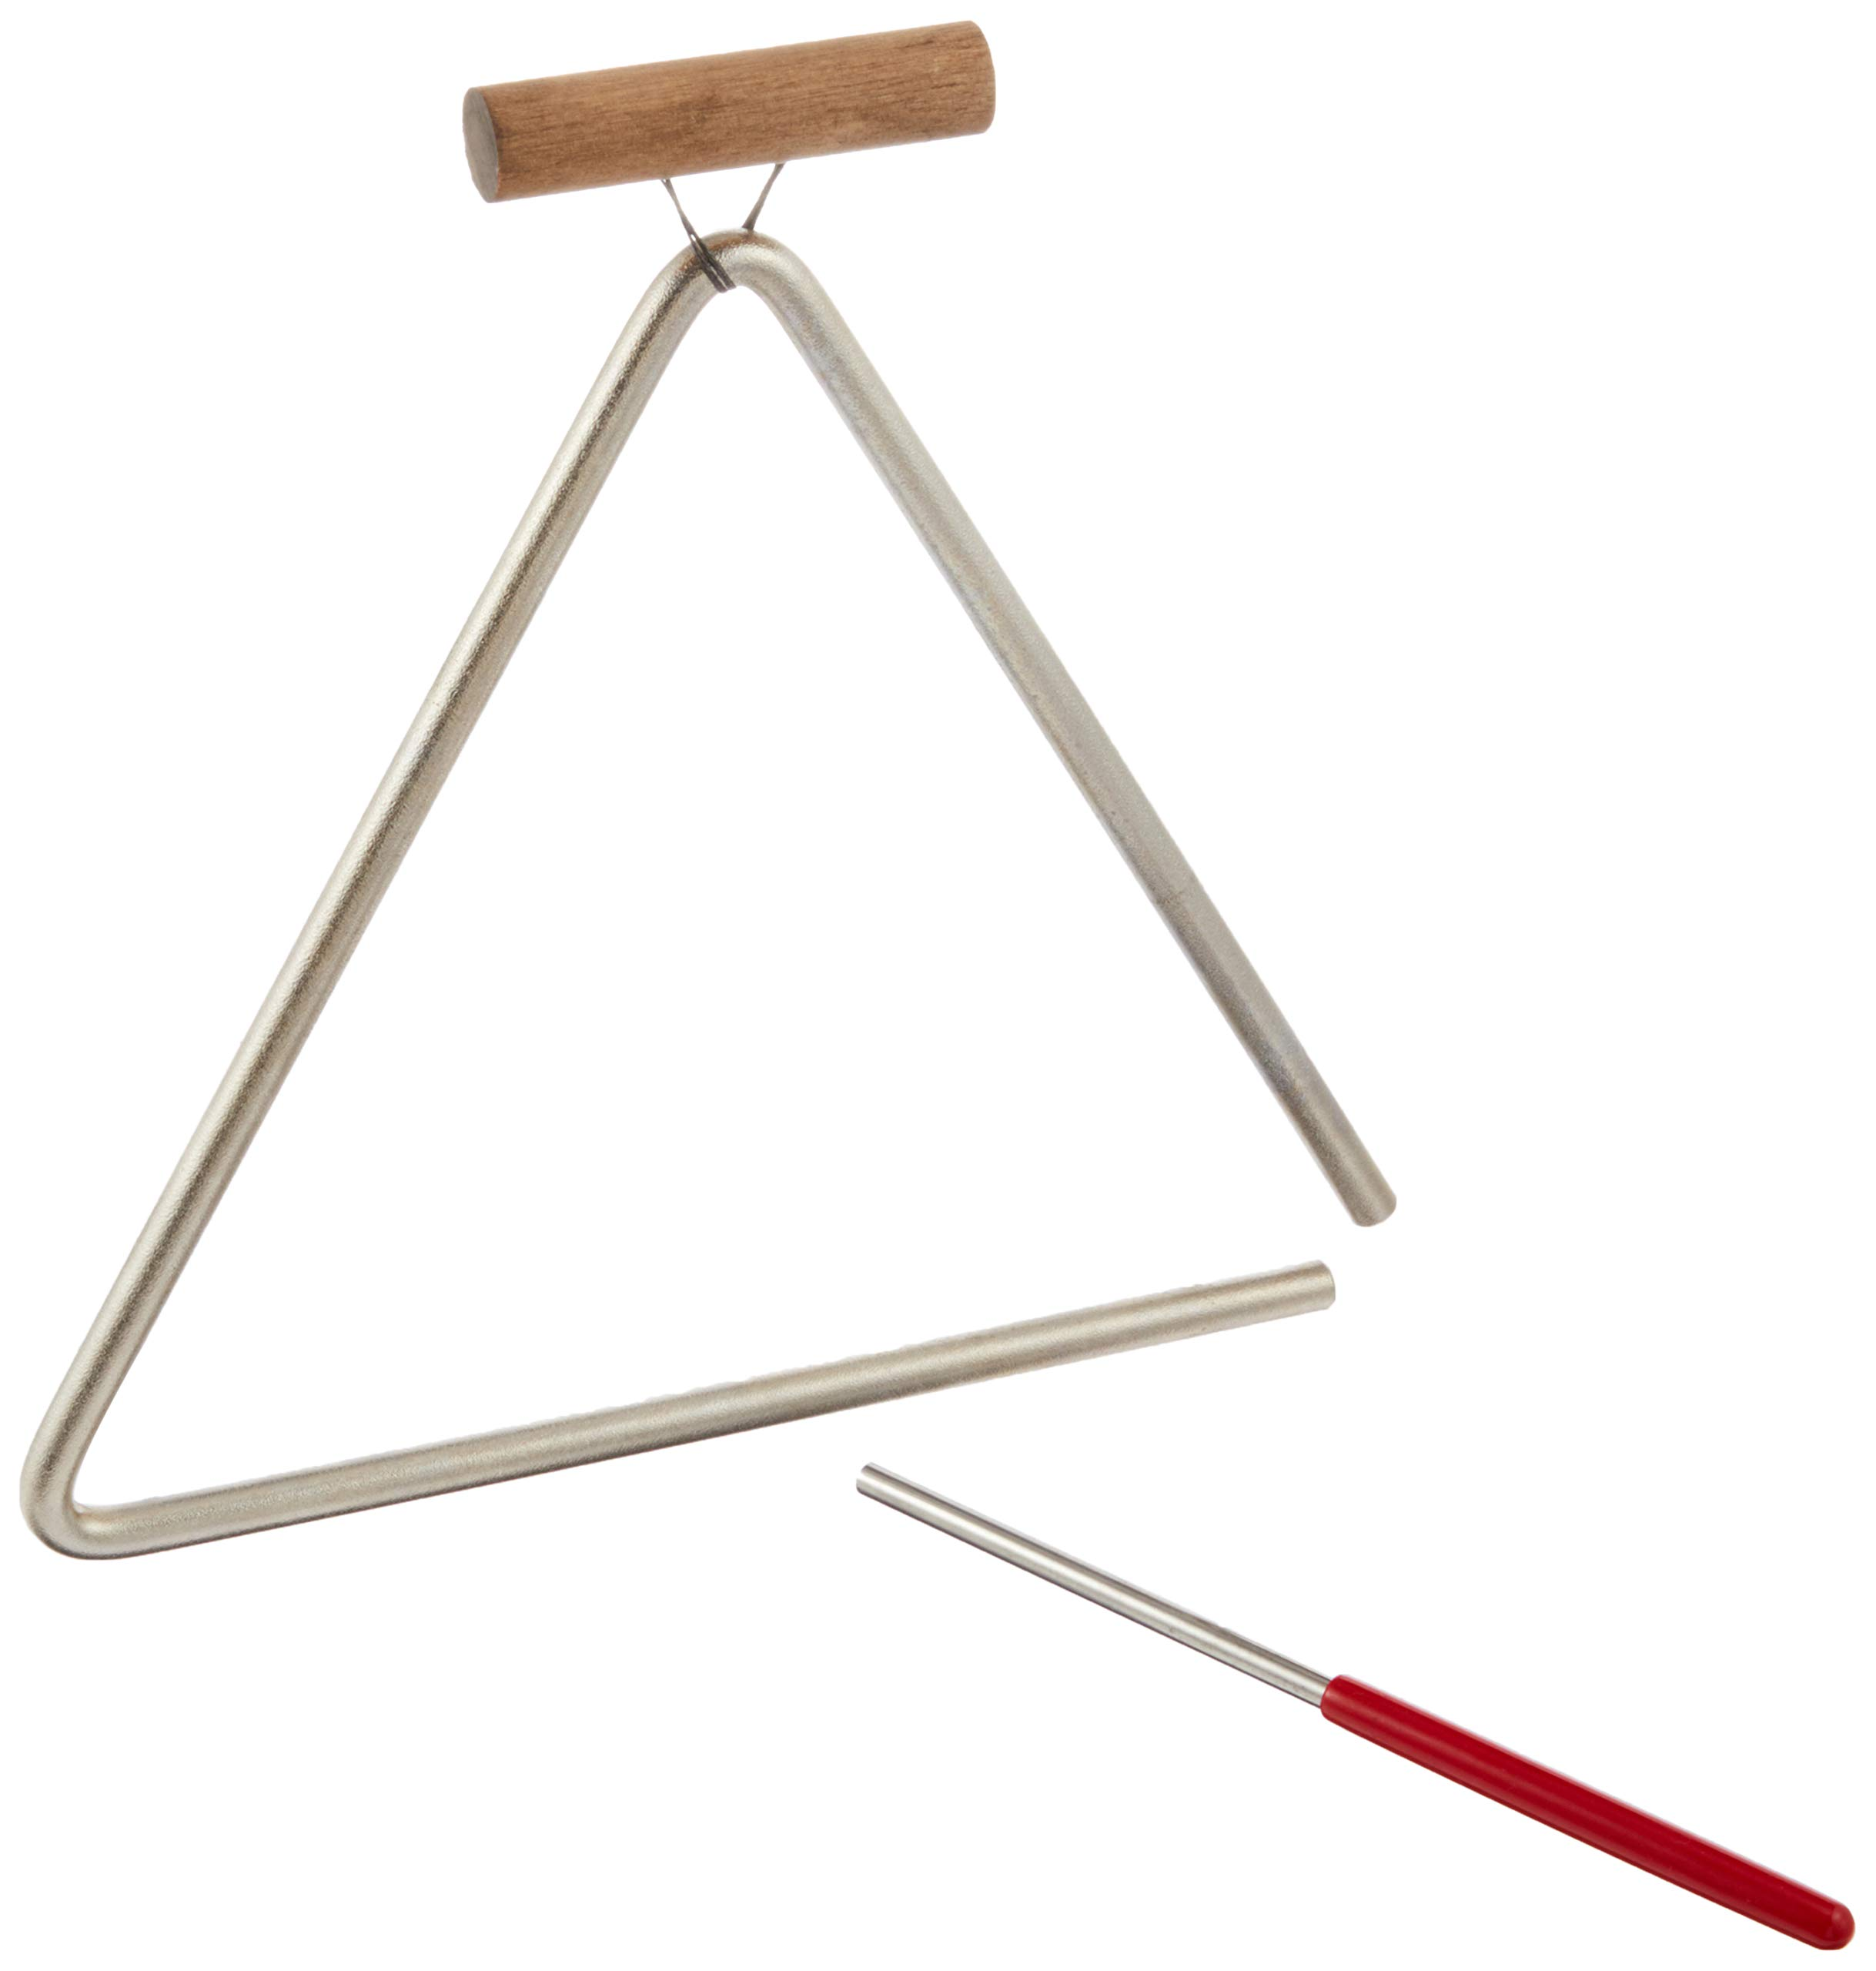 Treeworks Chimes Triangle, inch (TRE-HS10) by TreeWorks Chimes